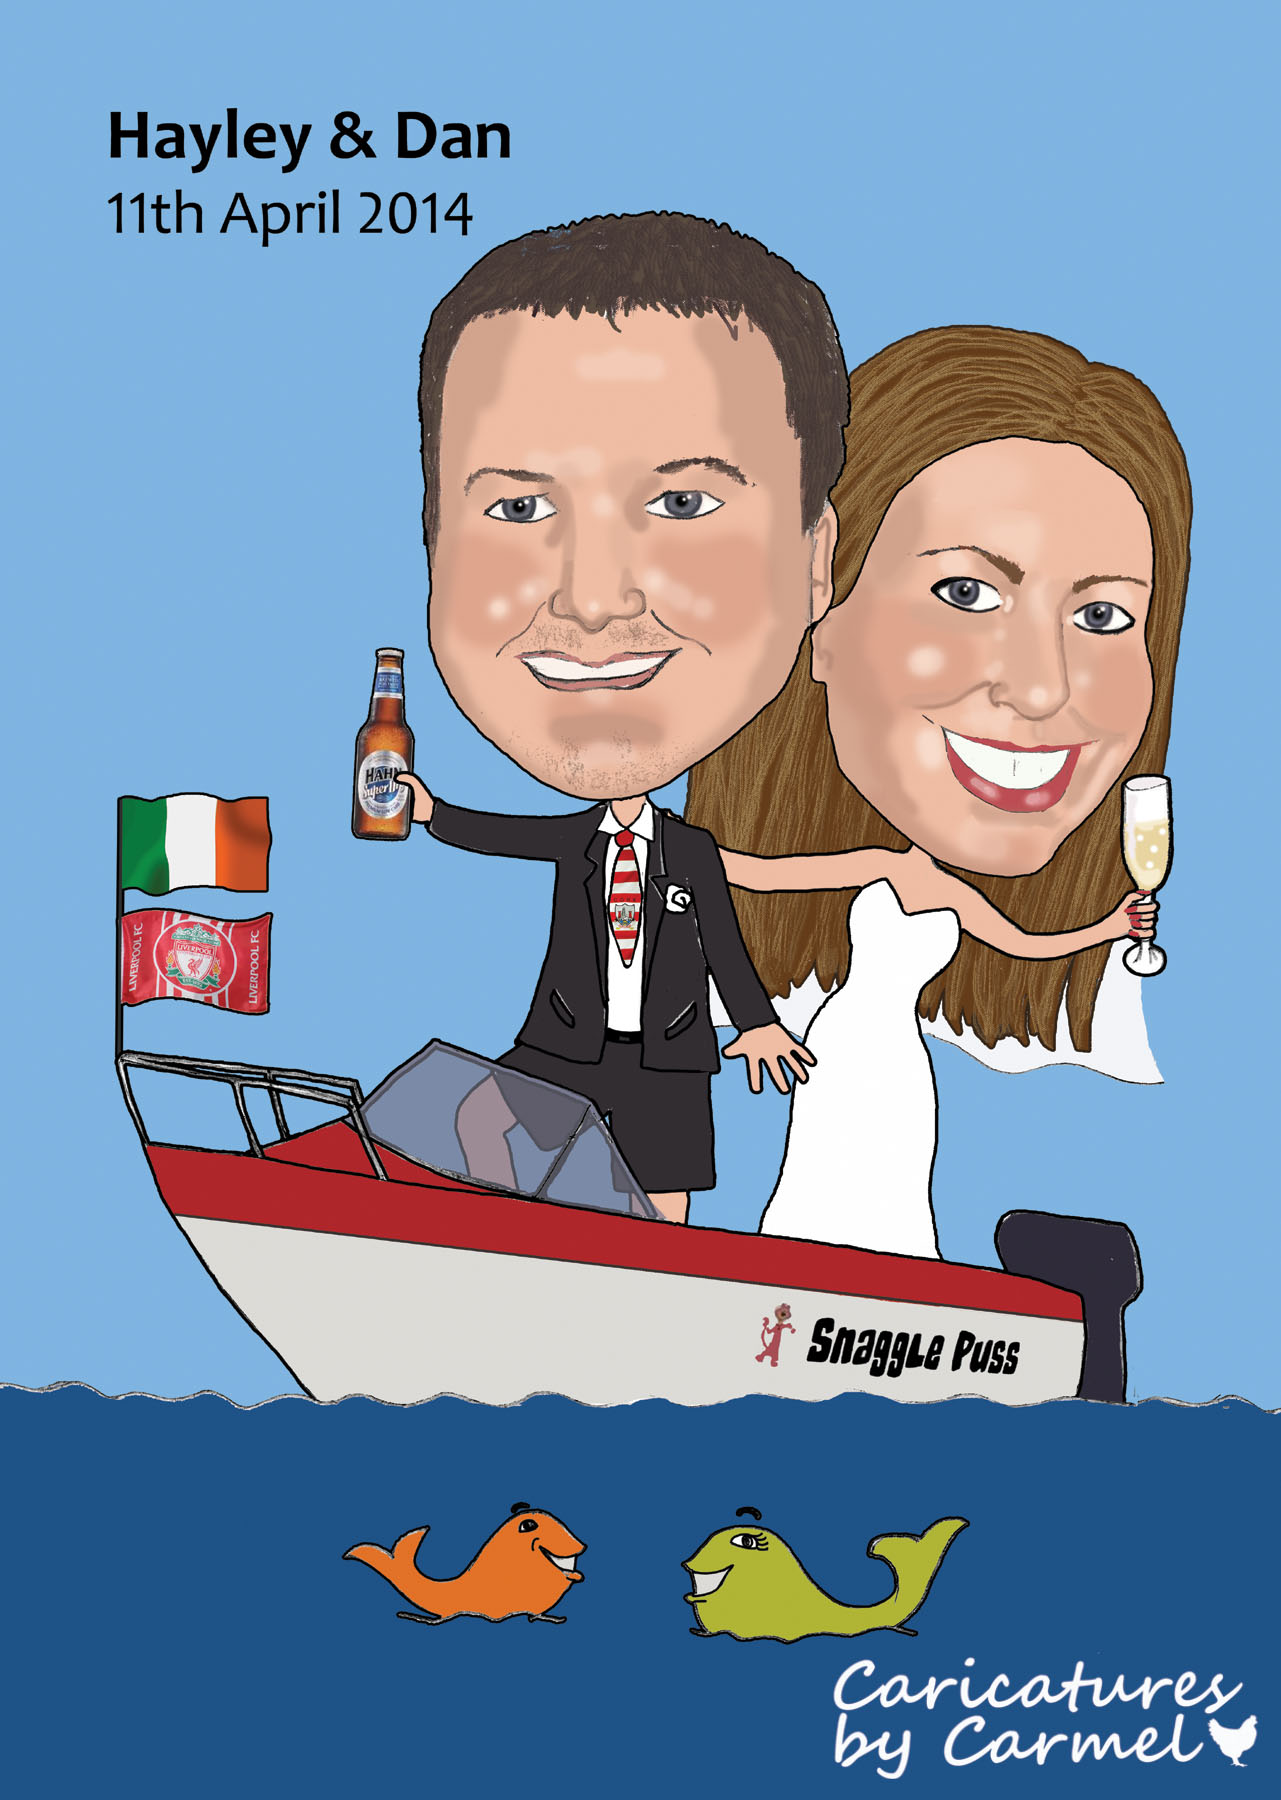 Caricature of Hayley & Dan with their boat Snagglepuss